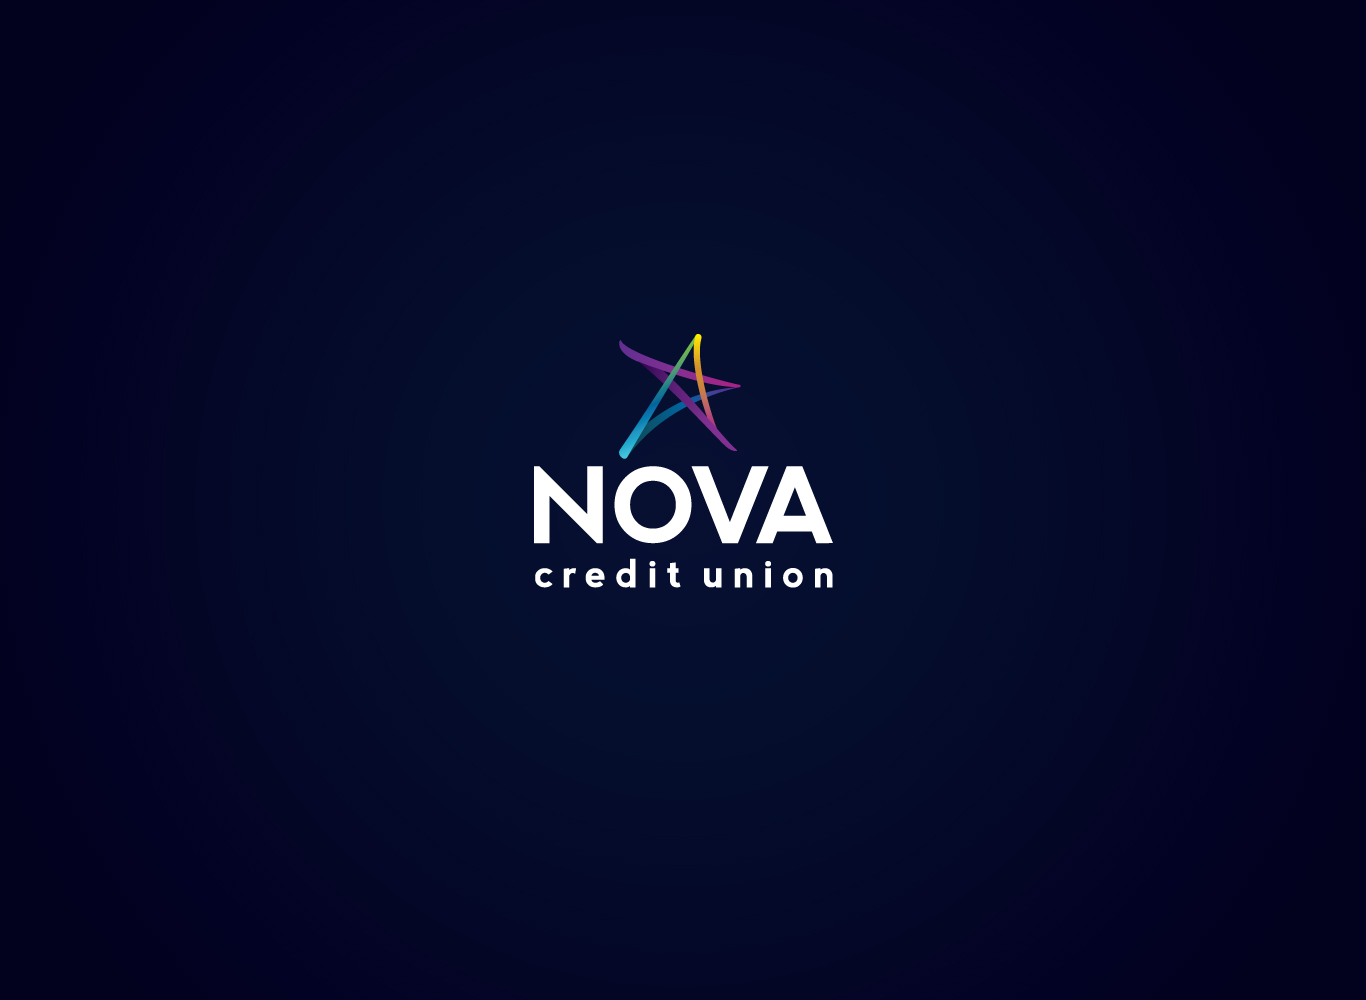 After; the new Nova Credit Union logo.